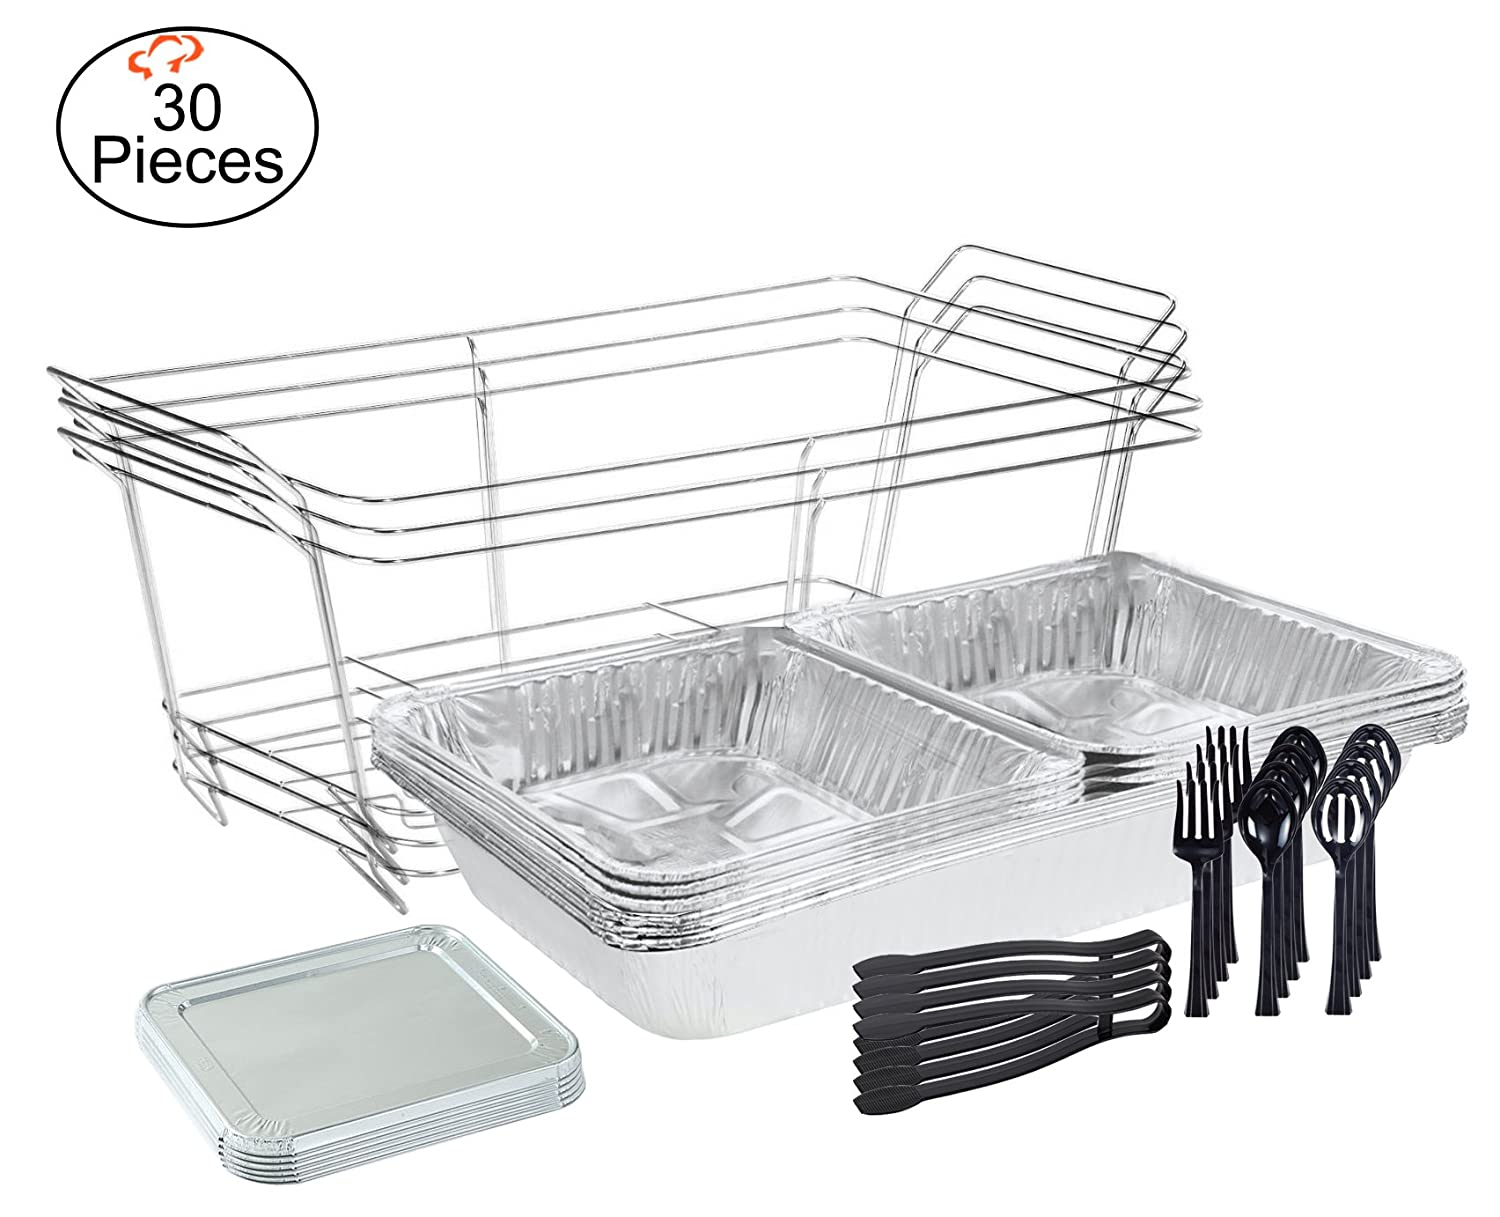 Tiger Chef 30-Piece Catering Set Serving Dishes for Parties Includes Chafer Pans Set and Disposable Serving Utensils, Spoons and Tongs for all parties, events including Birthday, Holiday, Weddings,